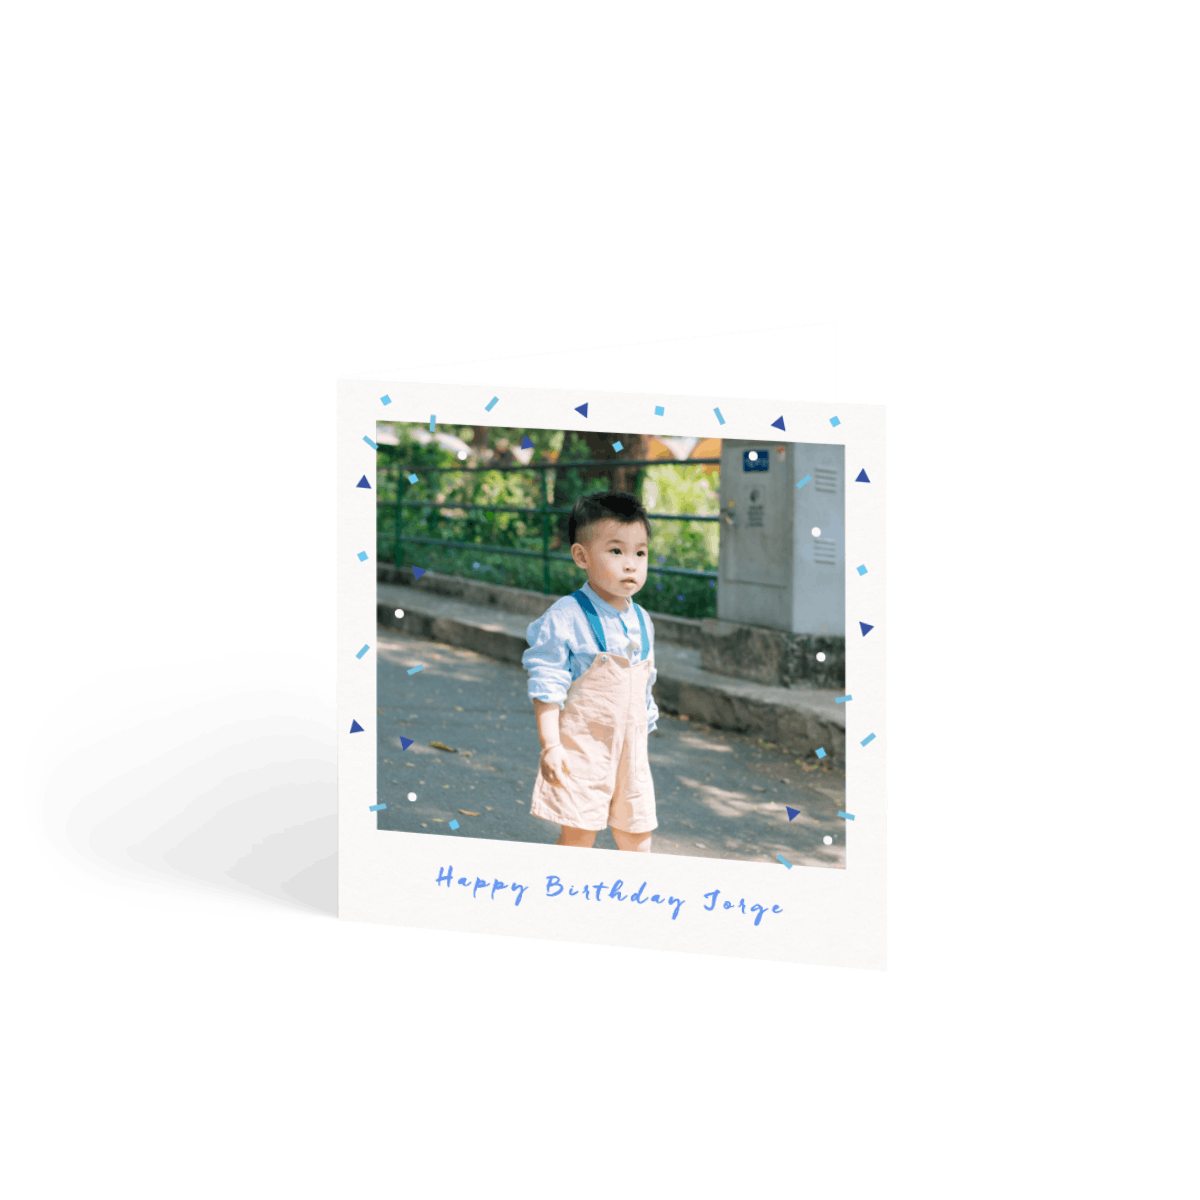 Personalised Birthday Cards For Him